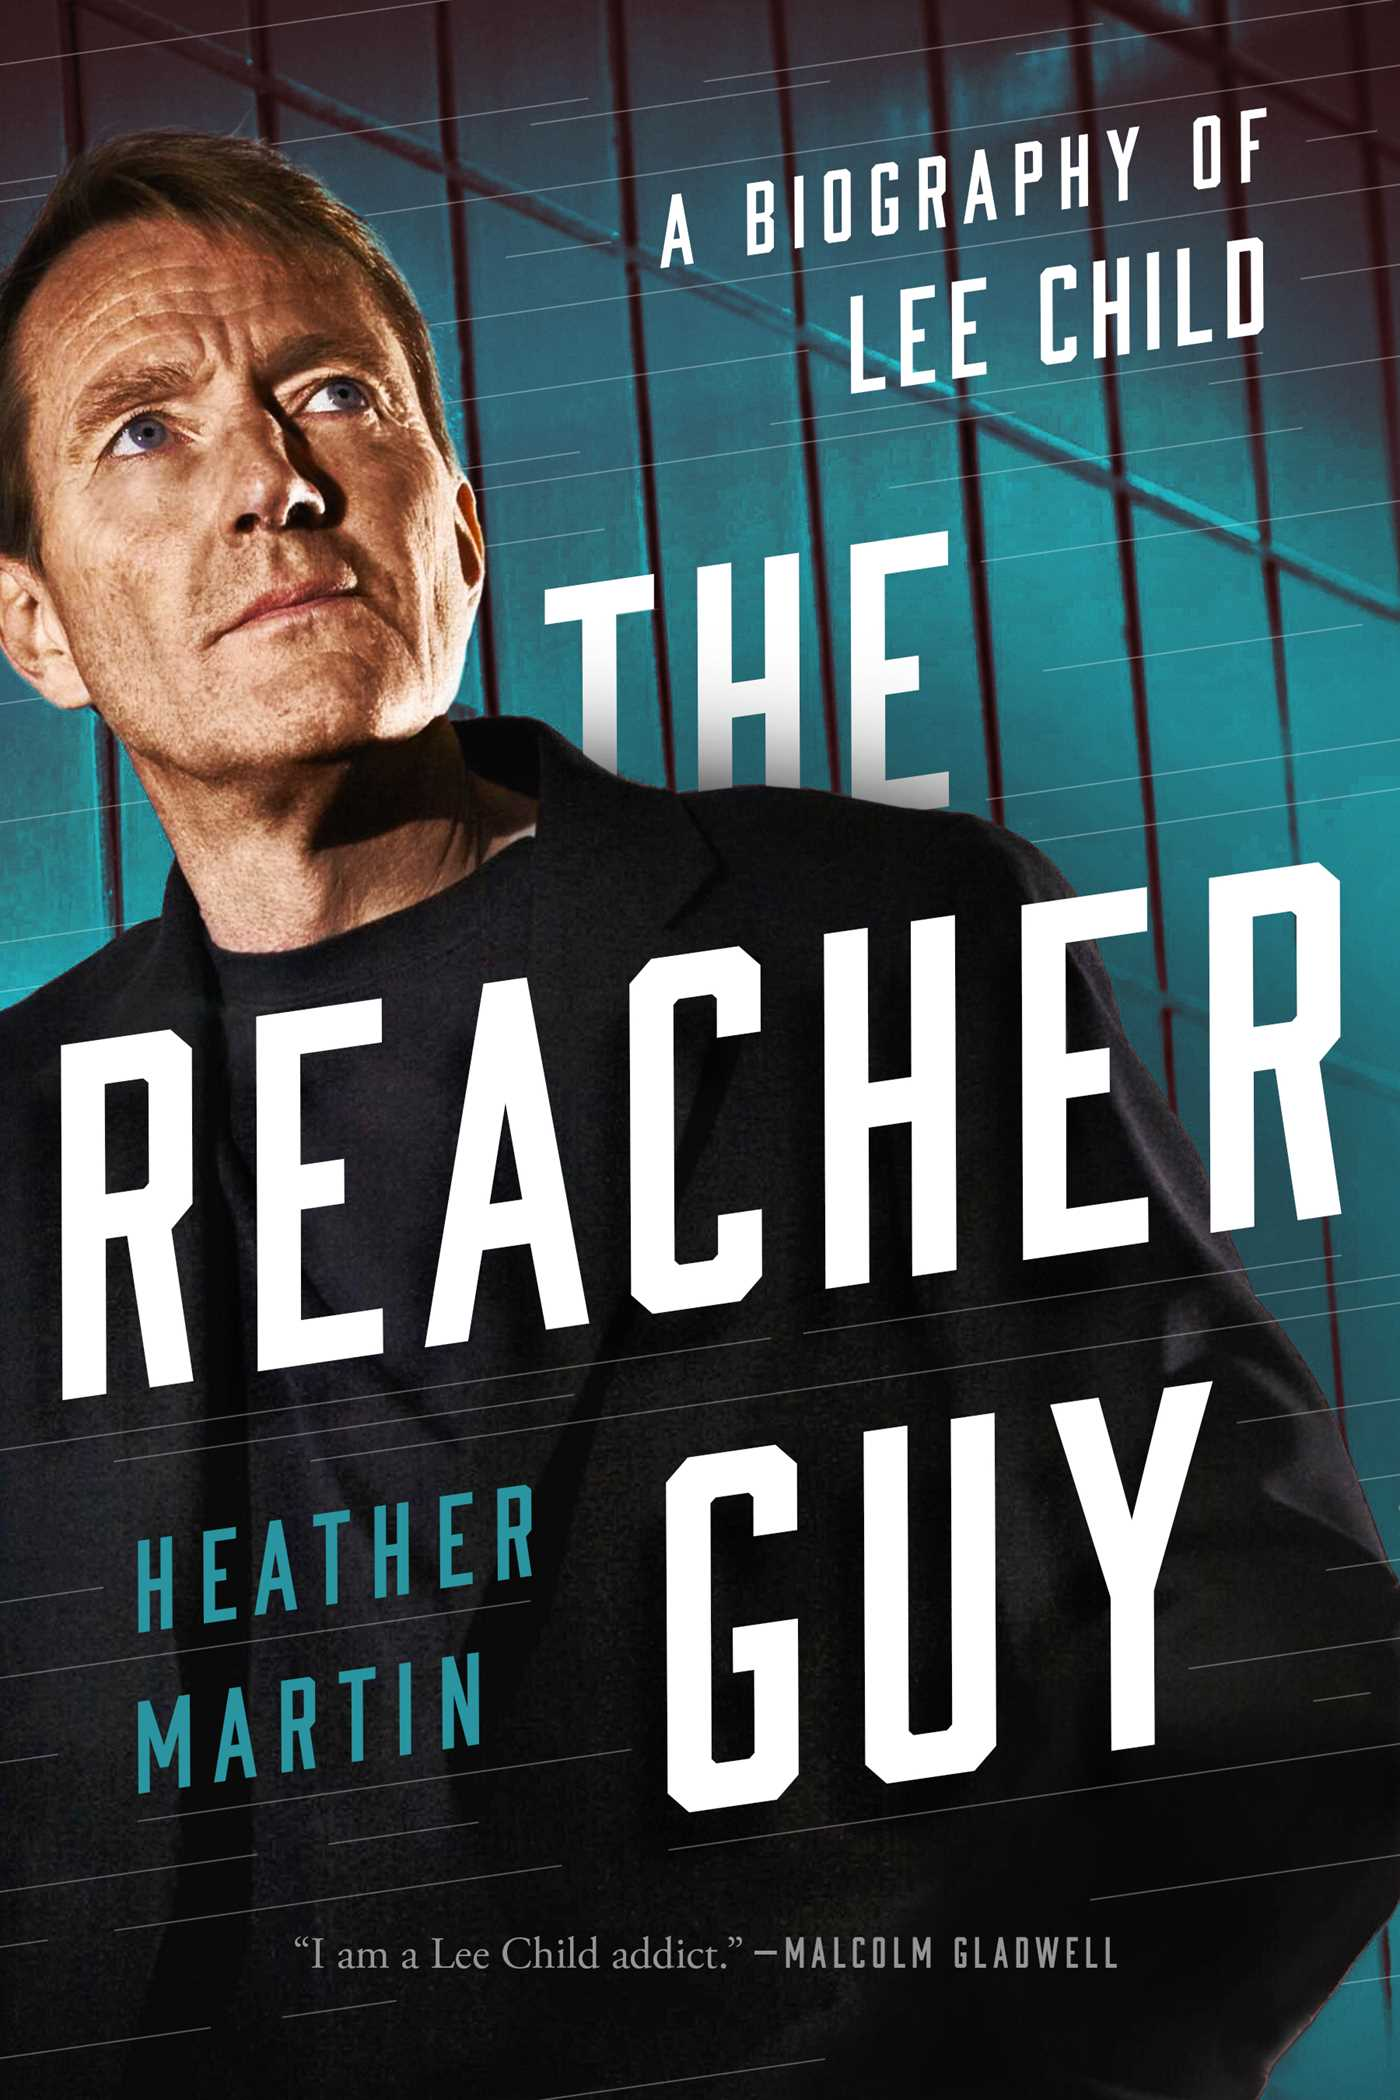 The Reacher Guy: A Biography of Lee Child